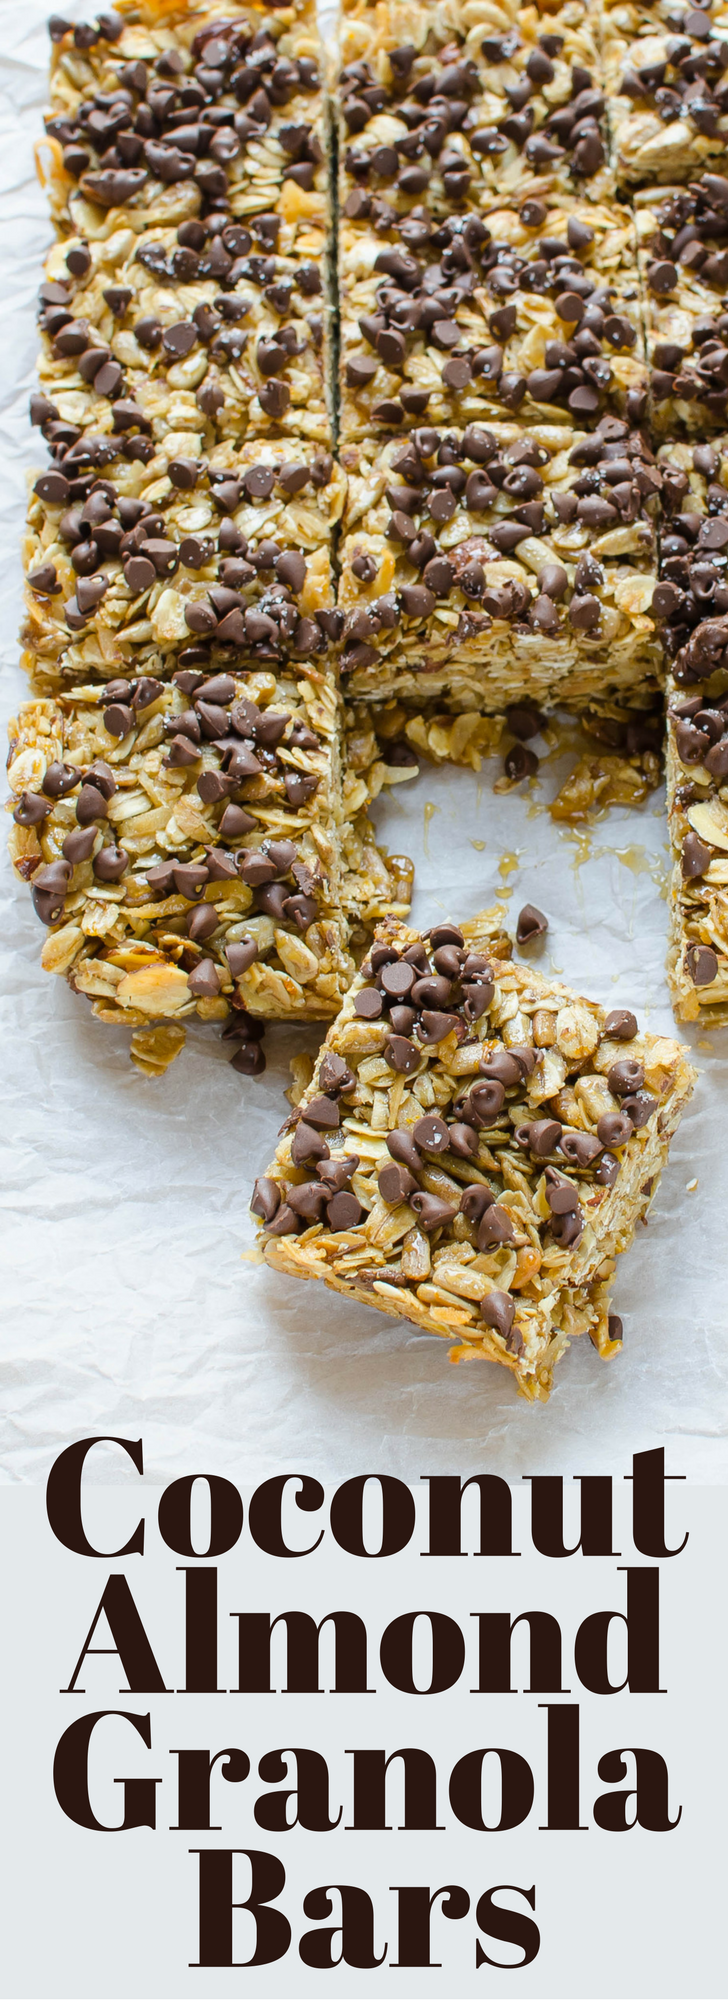 Homemade granola is easy to make and these Coconut Almond Granola bars with a hint of orange are the BEST! Great to tuck into your child's lunchbox.